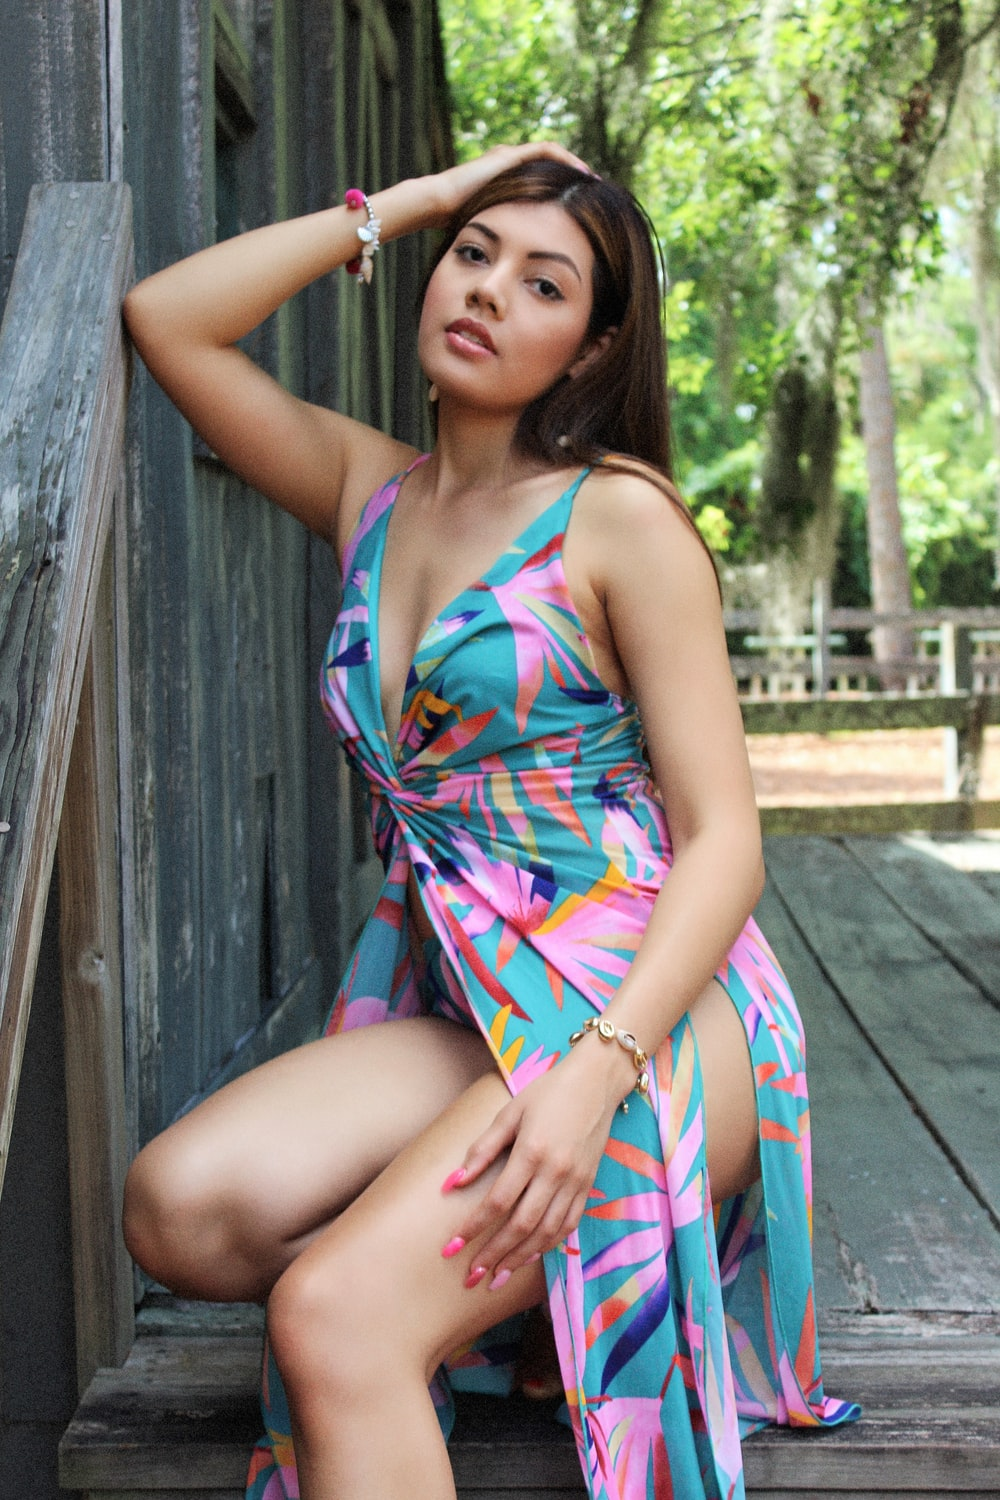 woman sitting on wooden ground